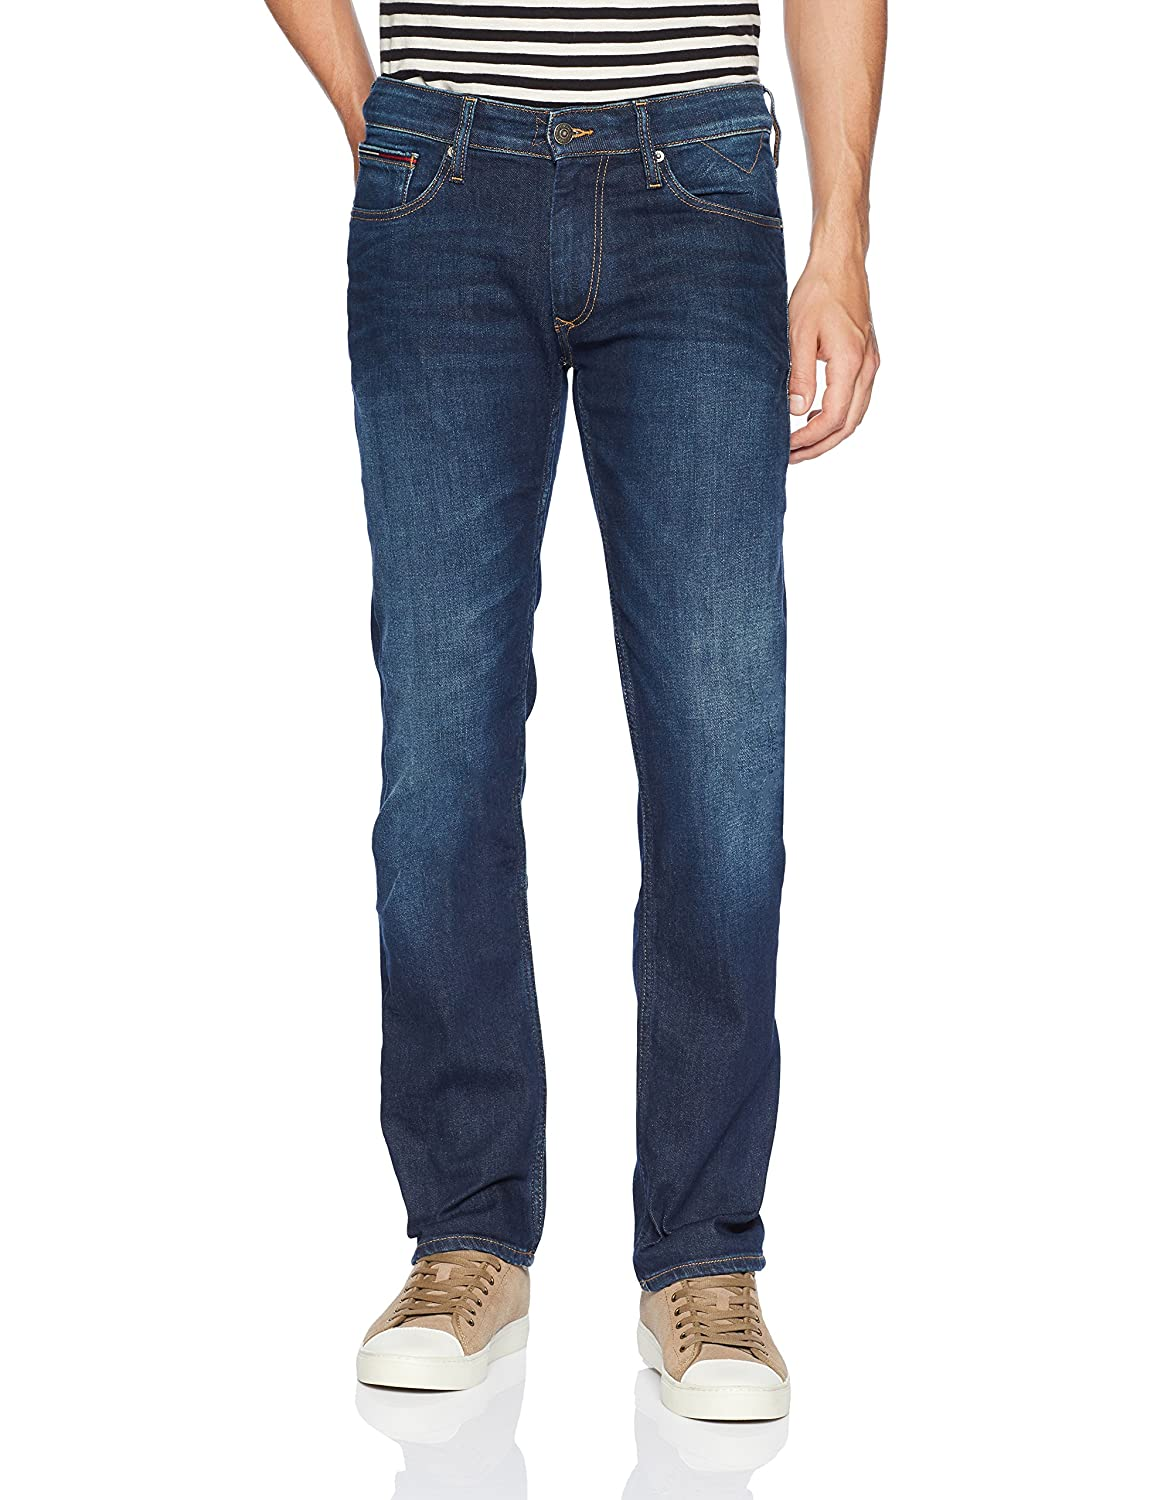 b556dbfe Tommy Hilfiger straight jeans for men featuring a straight fit and five  pocket styling. These straight fit jeans for men are tailored straight from  waist to ...